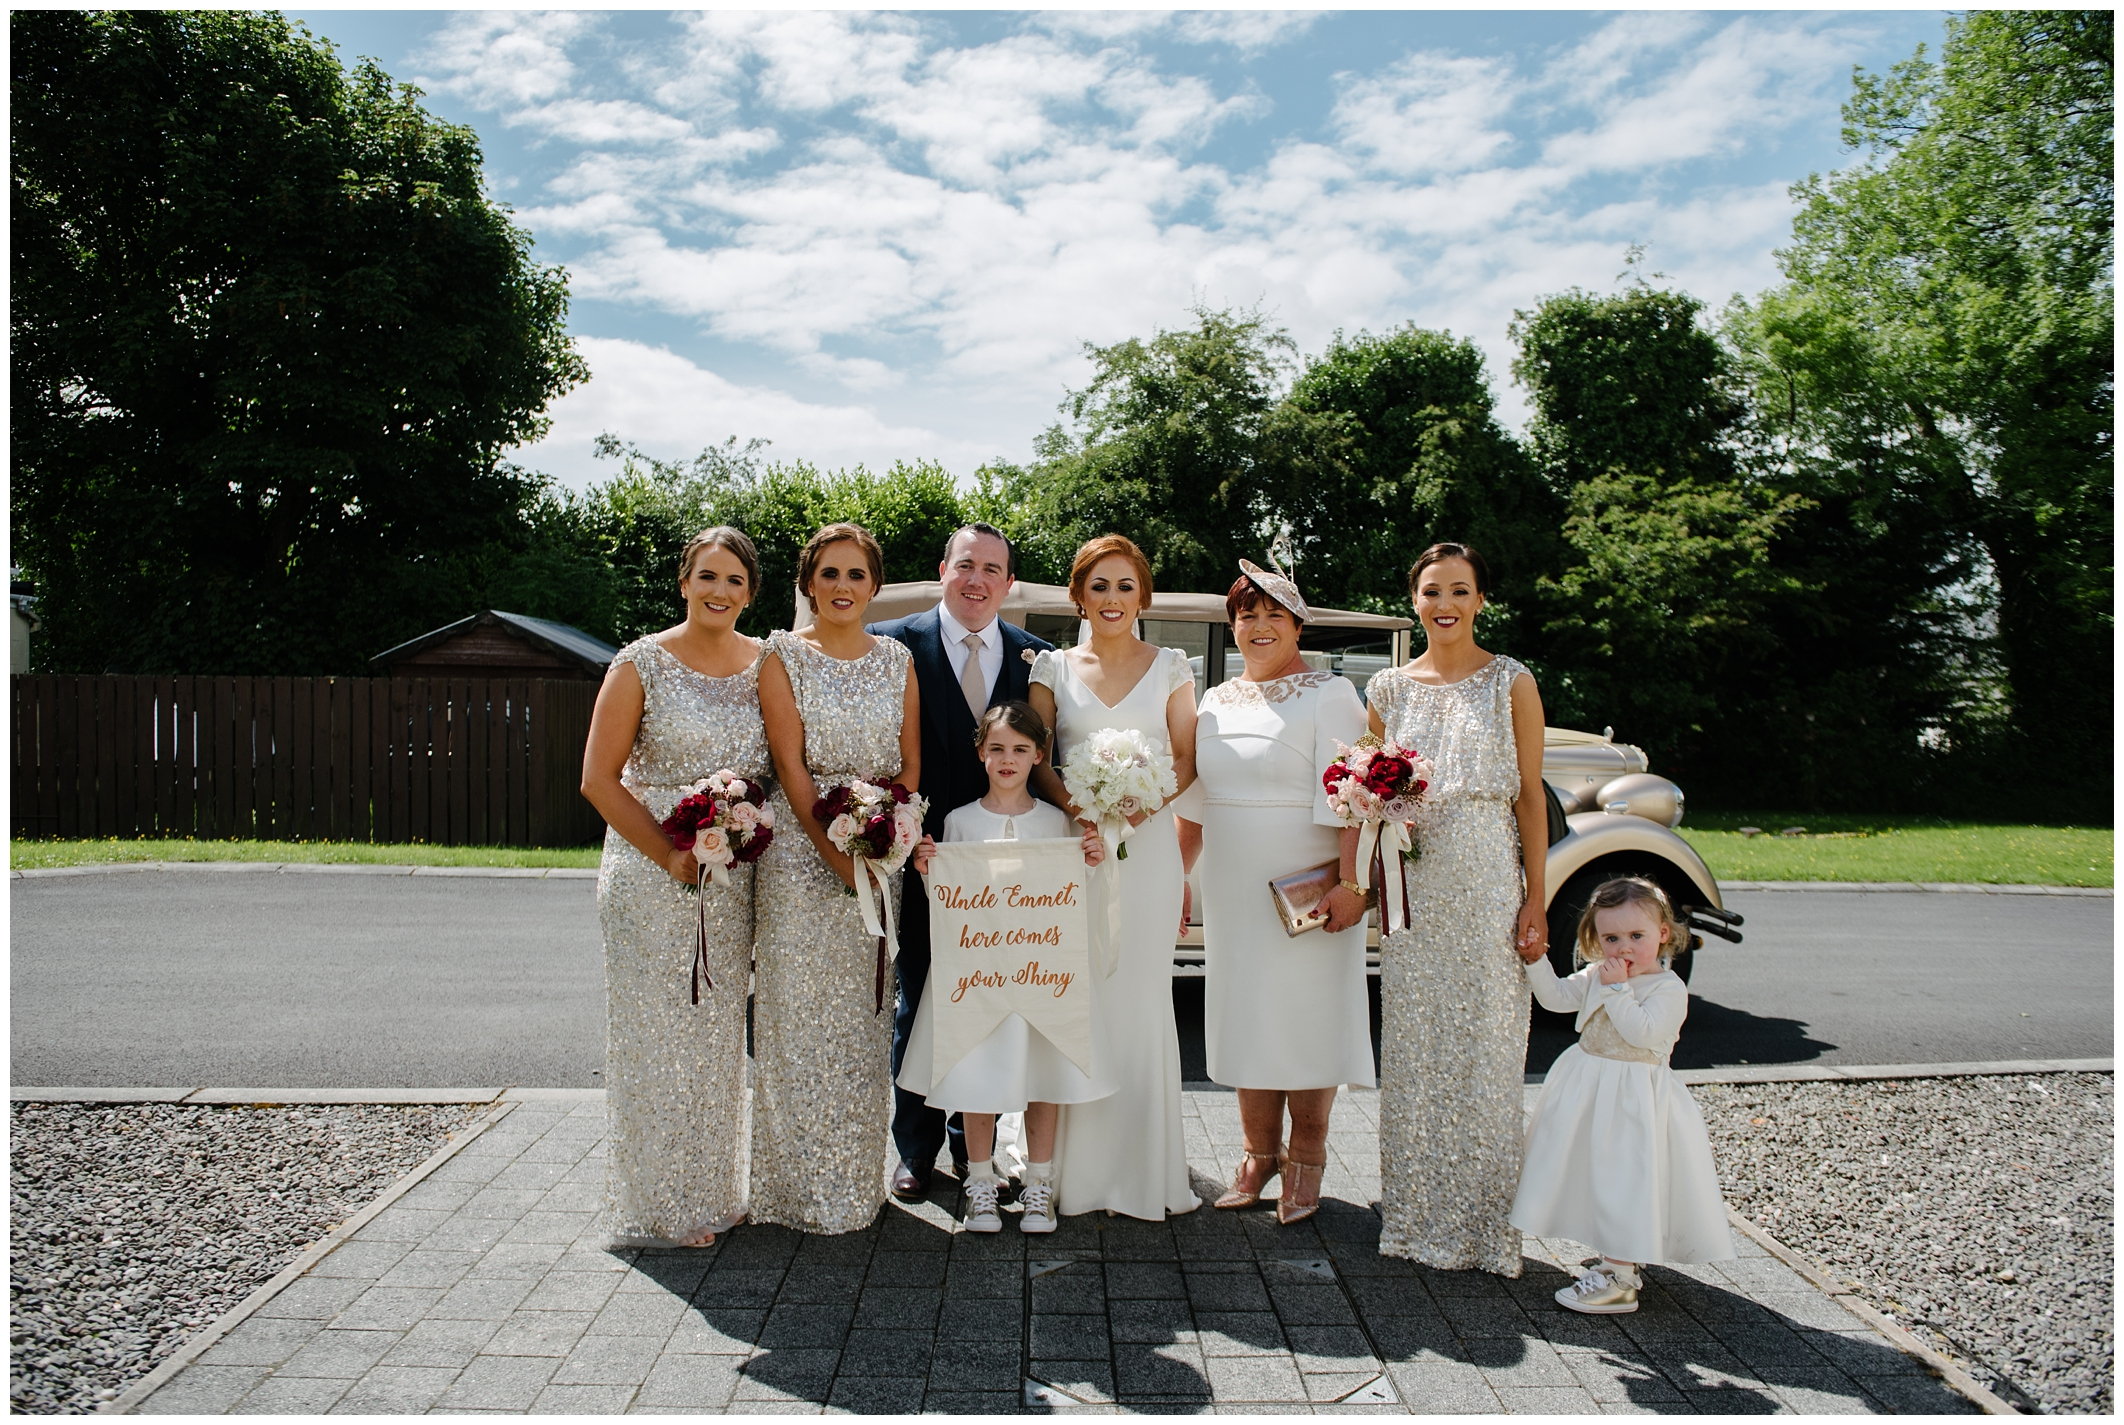 sinead_emmet_farnham_estate_wedding_jude_browne_photography_0067.jpg